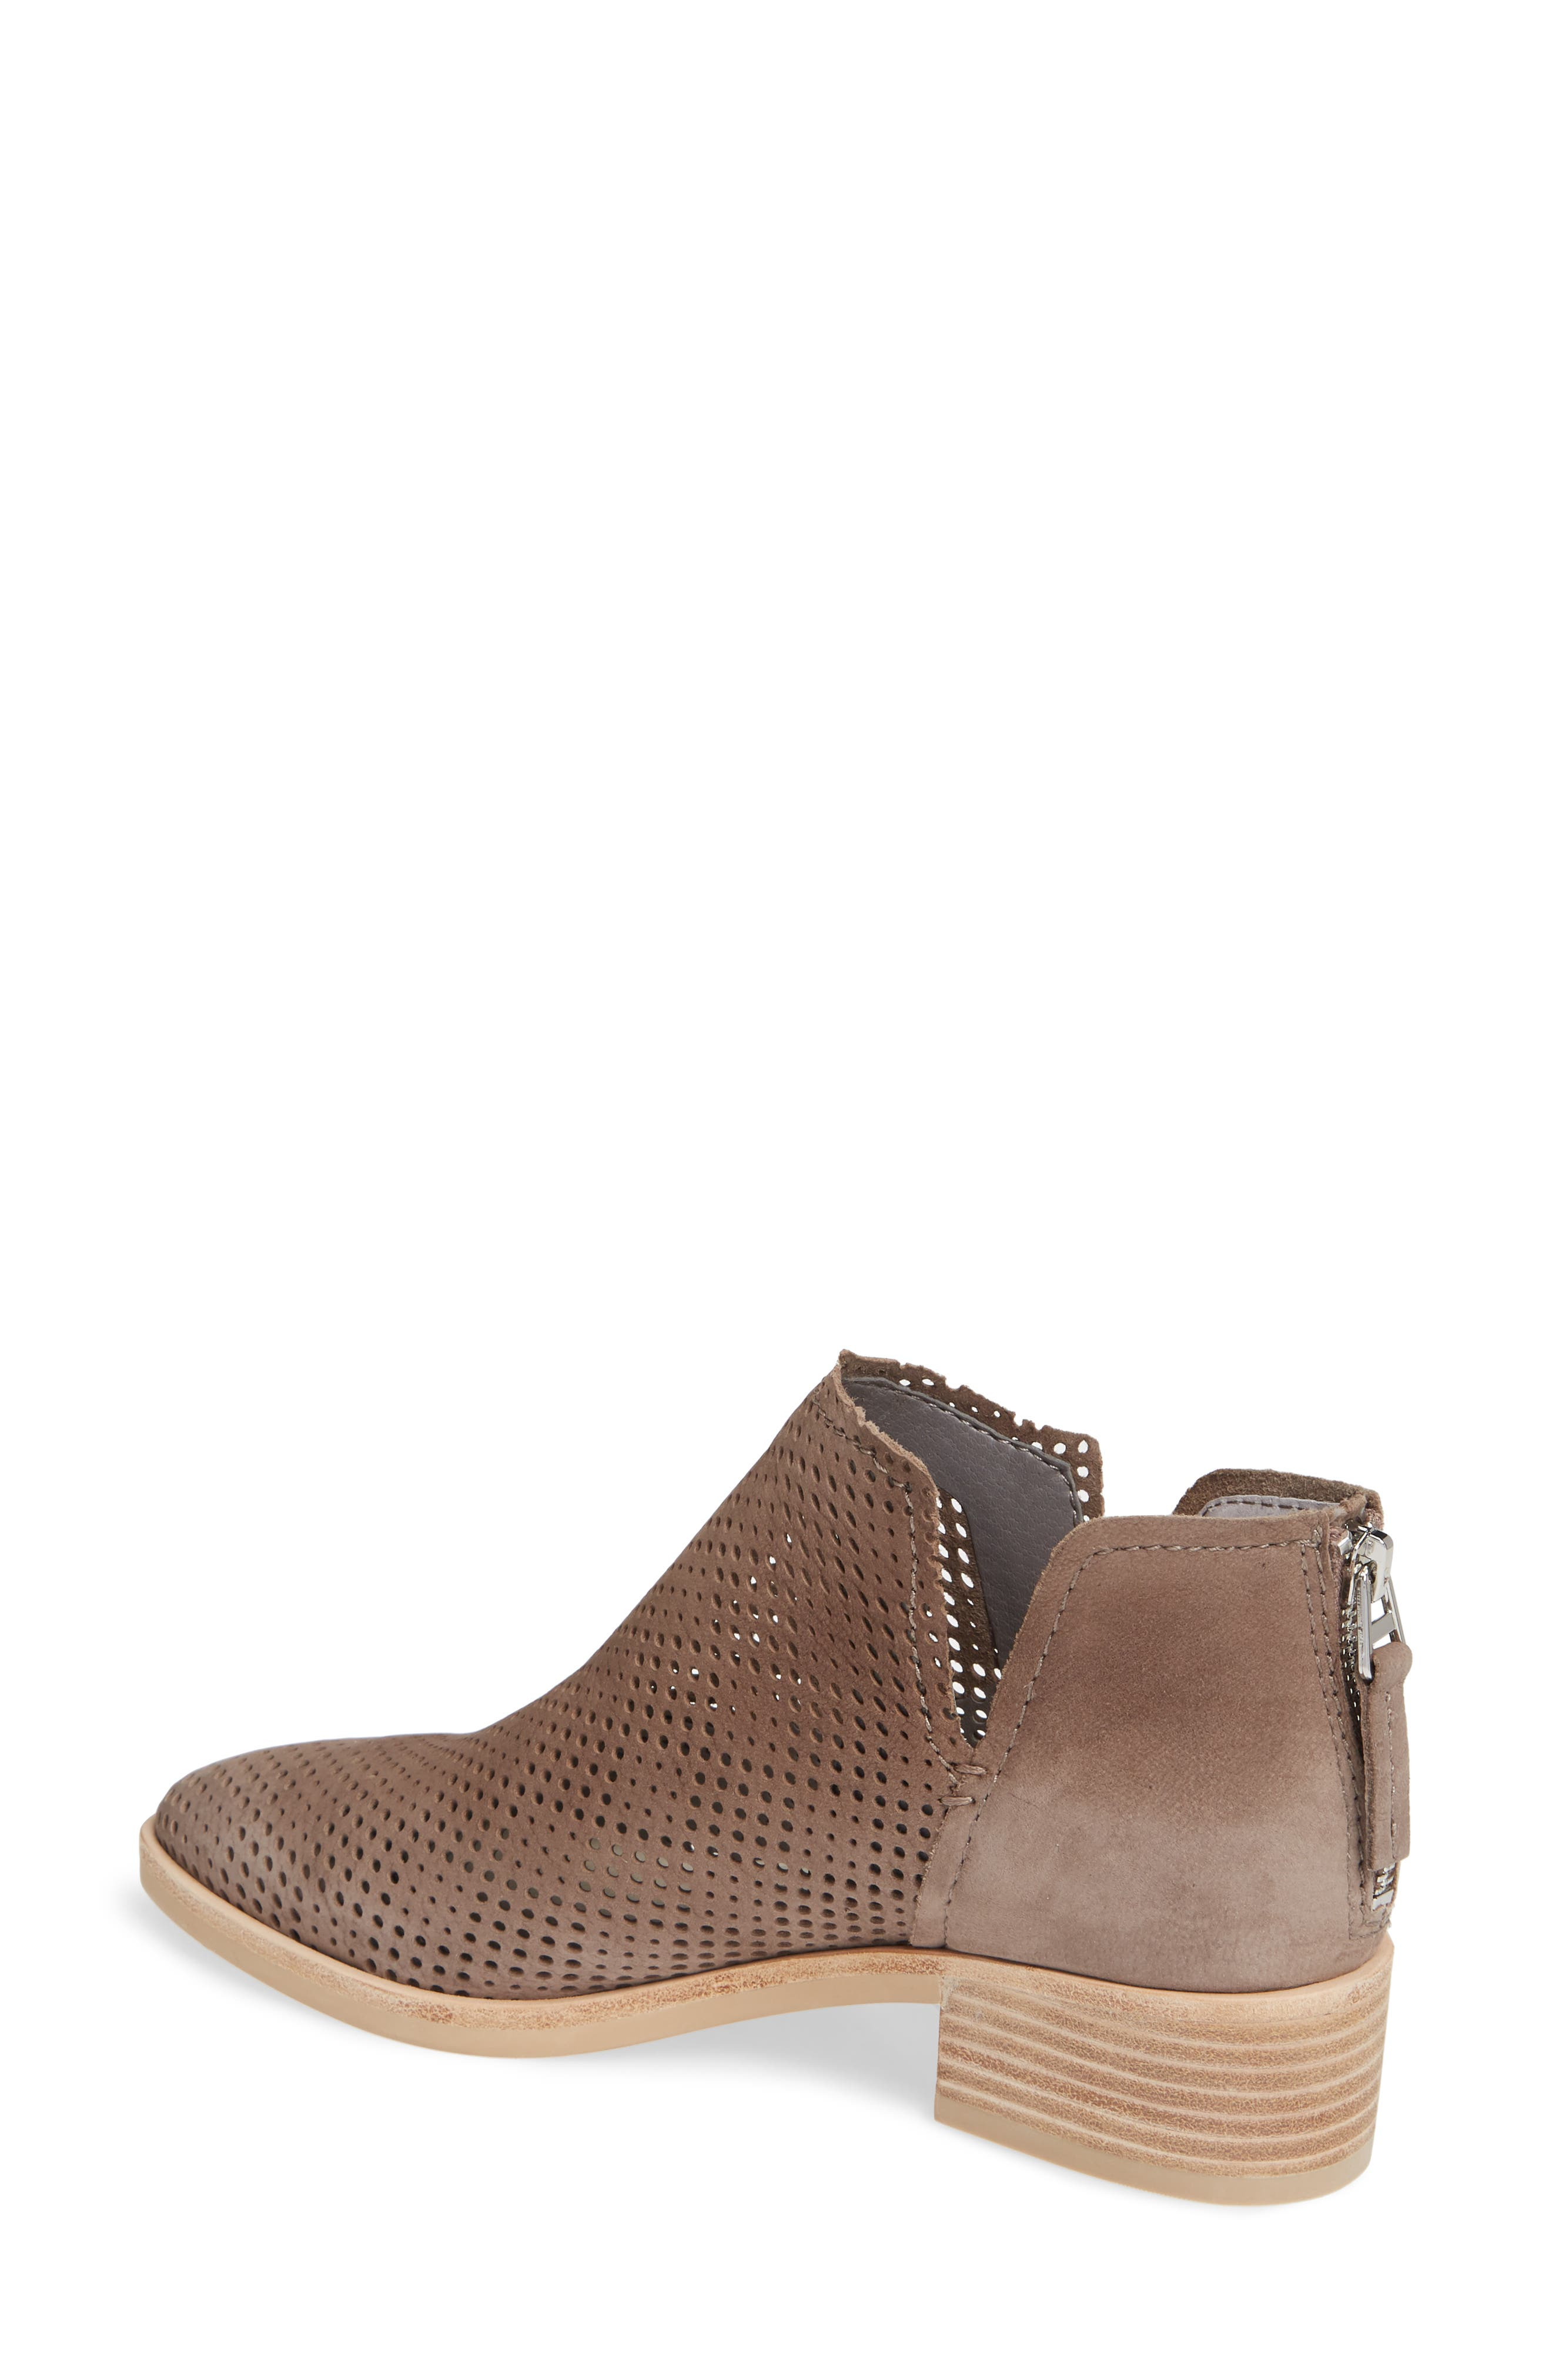 DOLCE VITA,                             Tauris Perforated Bootie,                             Alternate thumbnail 2, color,                             SMOKE